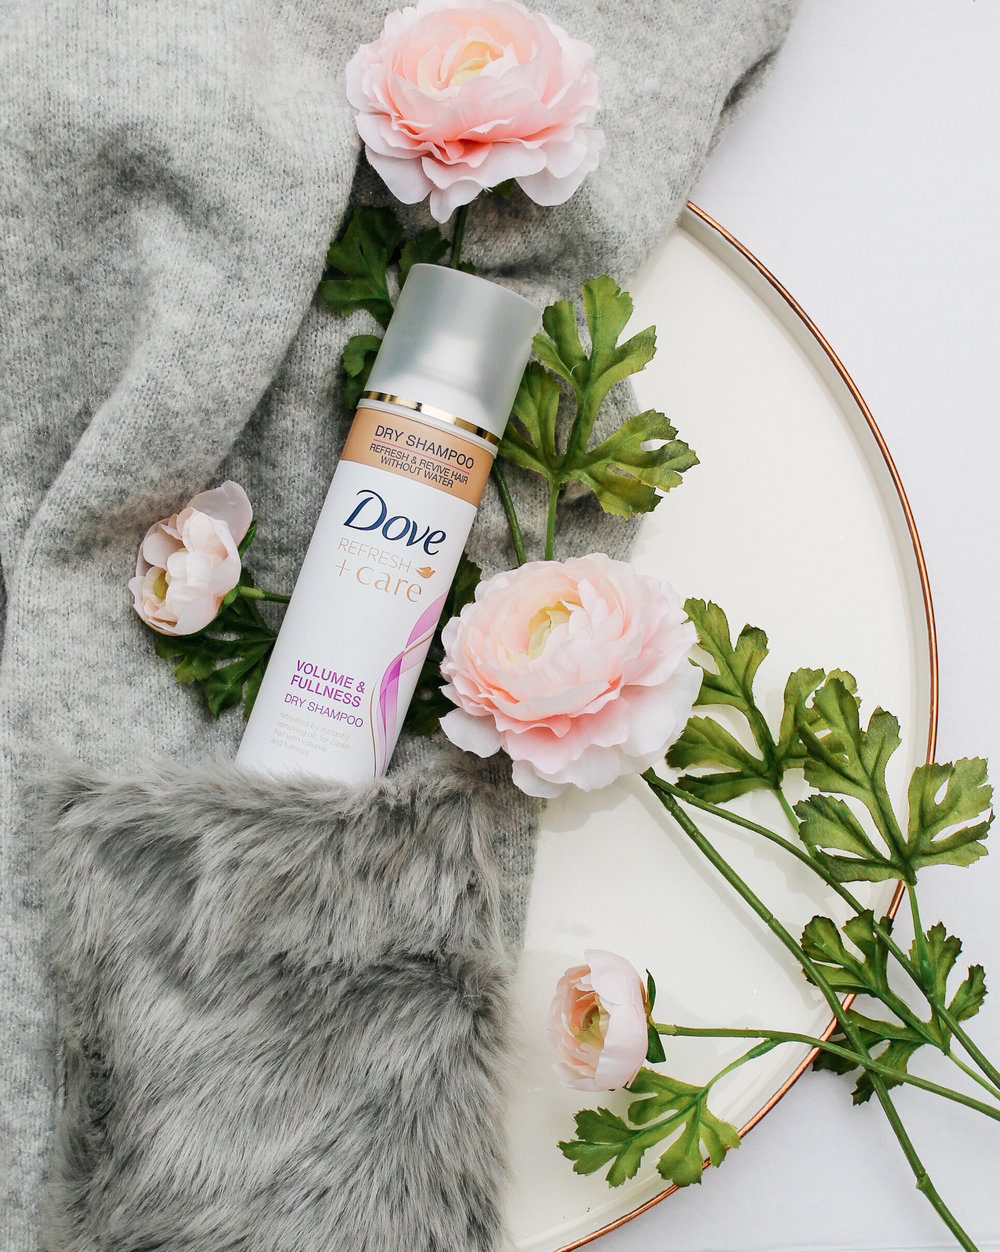 Social media content for DOVE skincare. Styling and photography by Glory Barbaris.